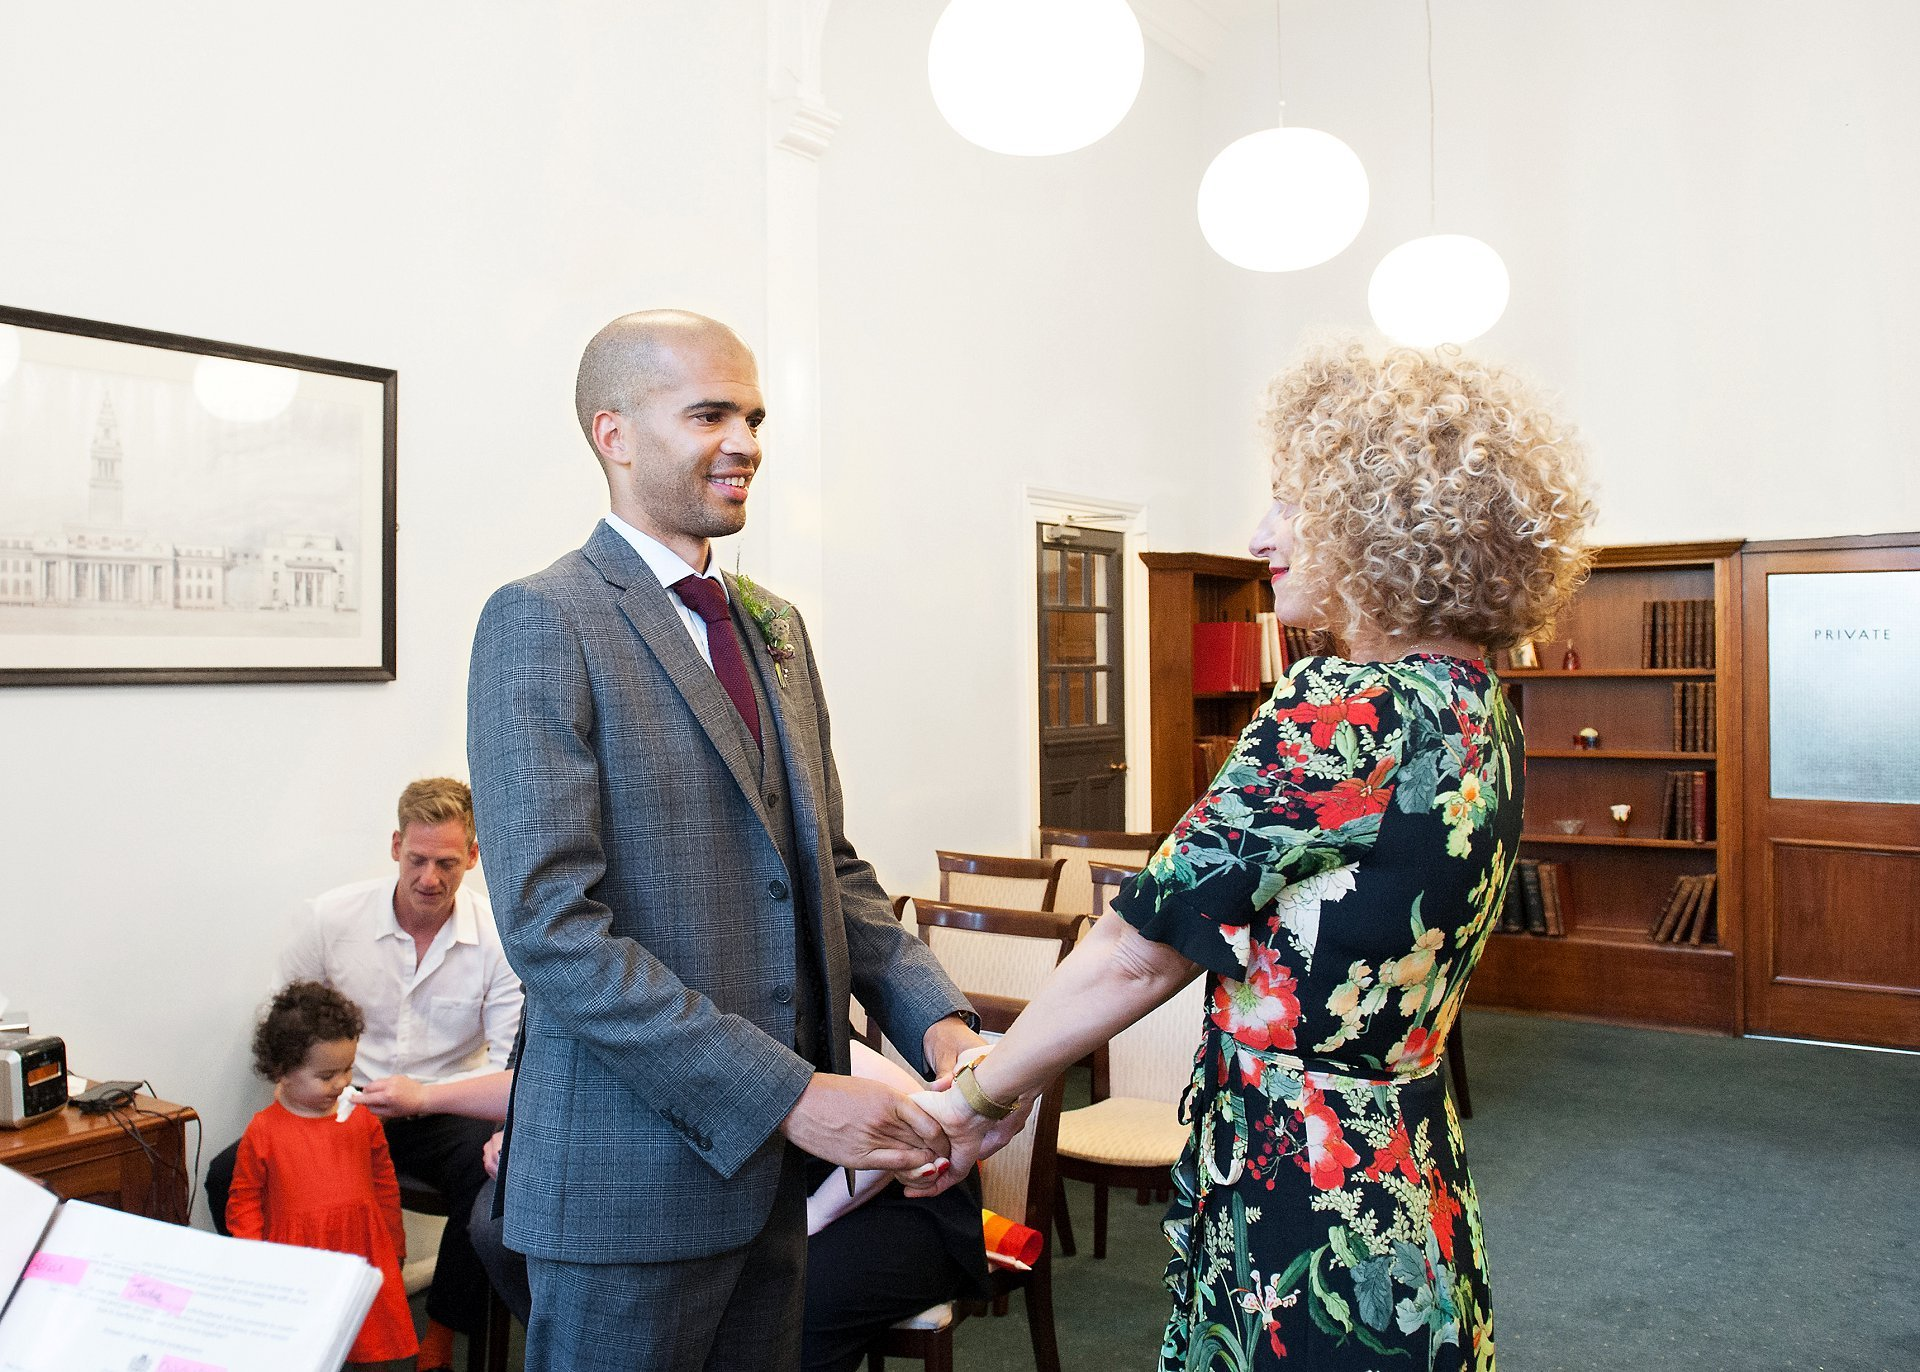 Bride & groom complete their vows in the Marylebone Room at Mayfair Library and smile reassuringly at each other